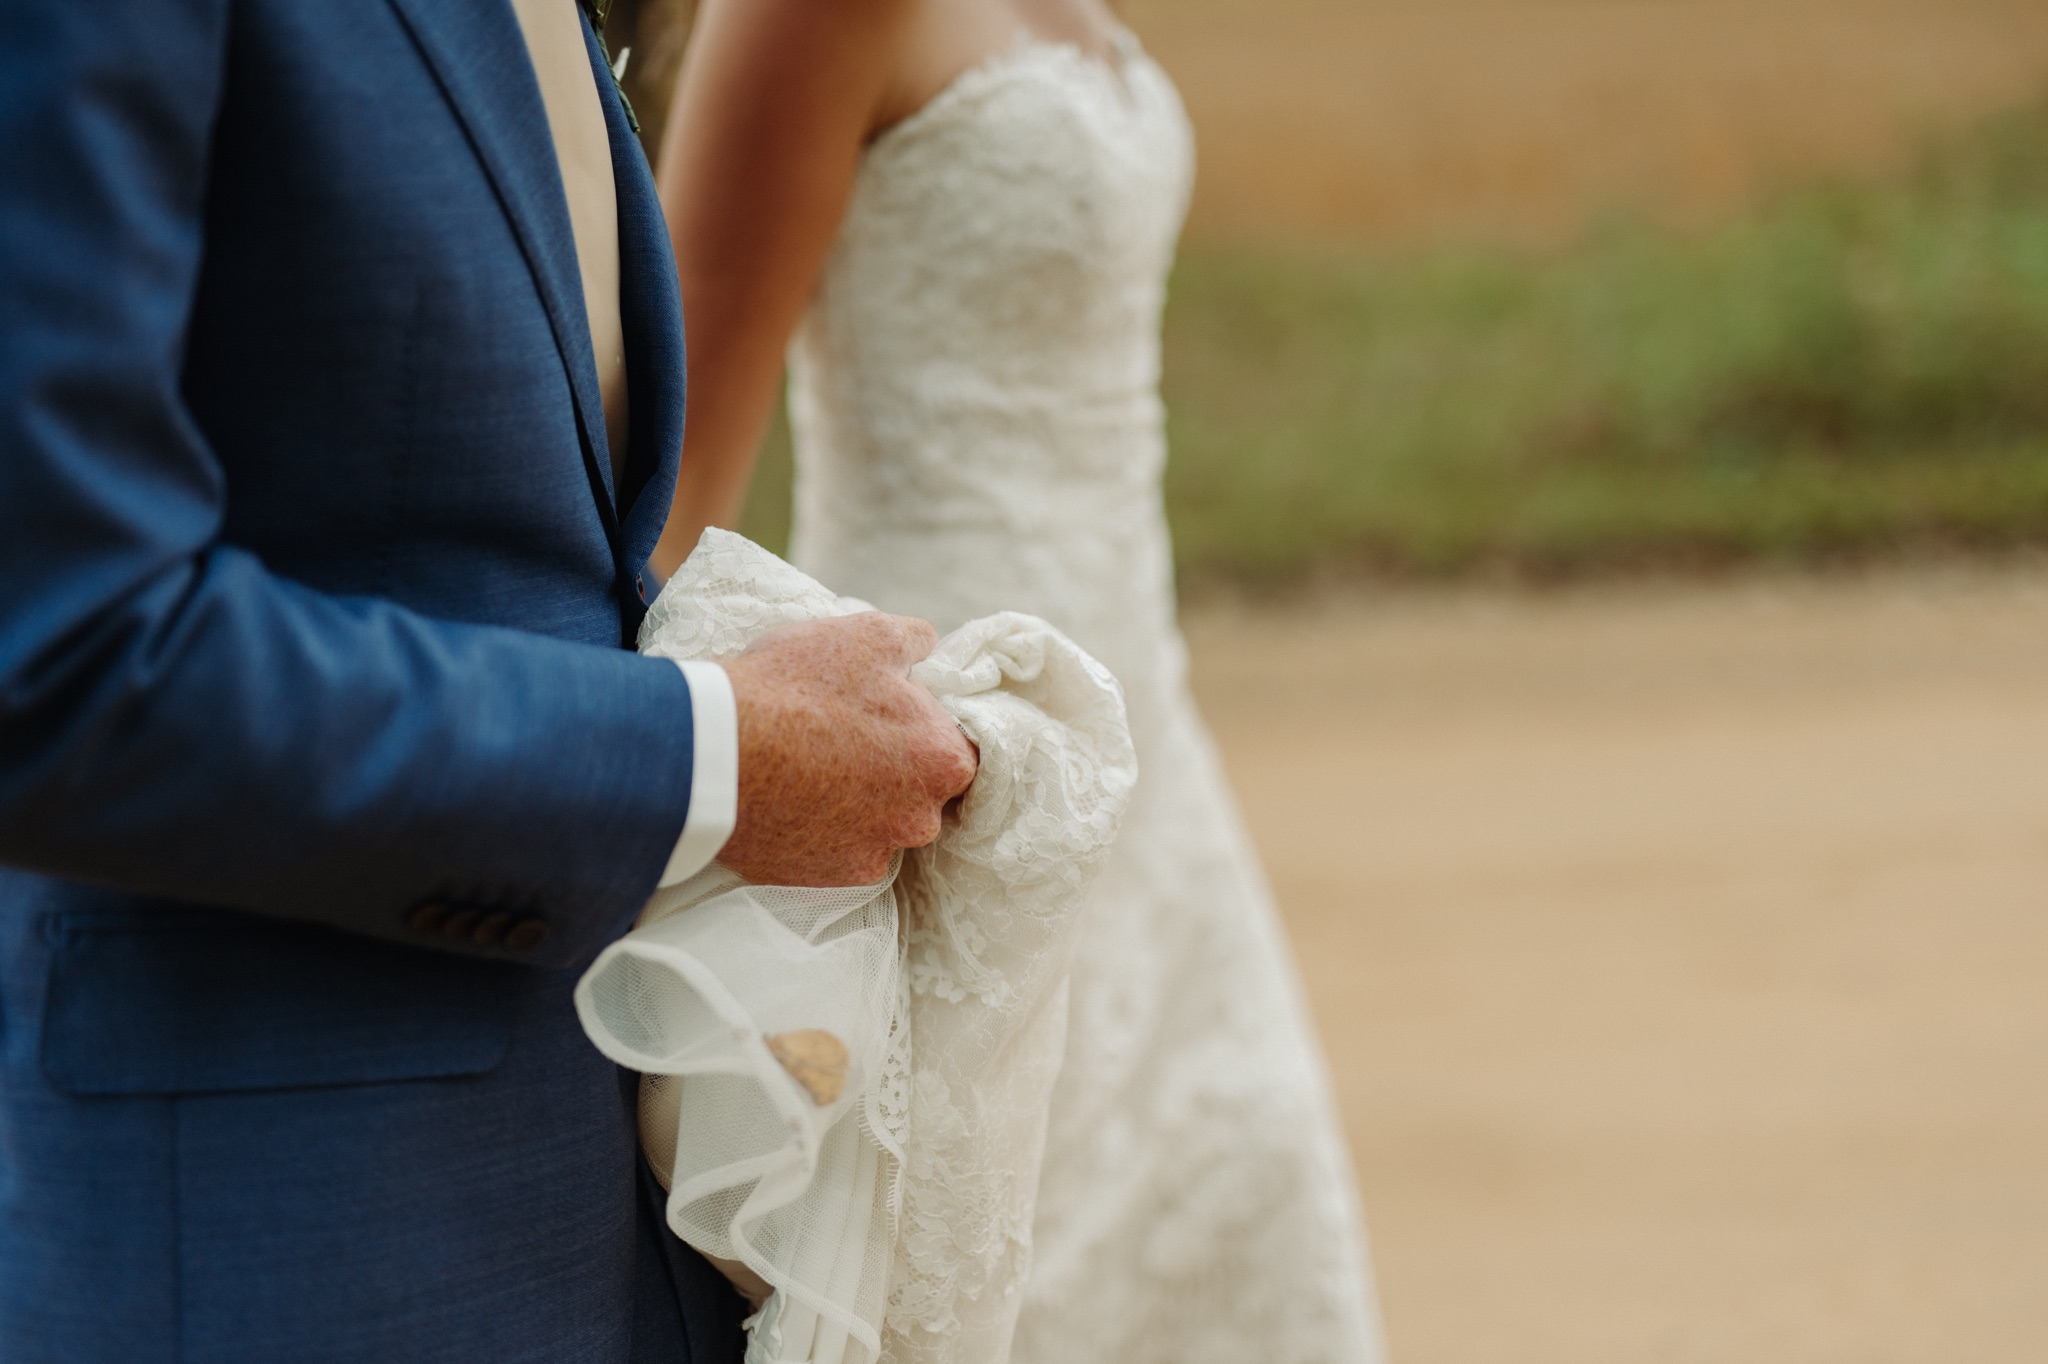 groom holding up bride's dress while walking next to each other